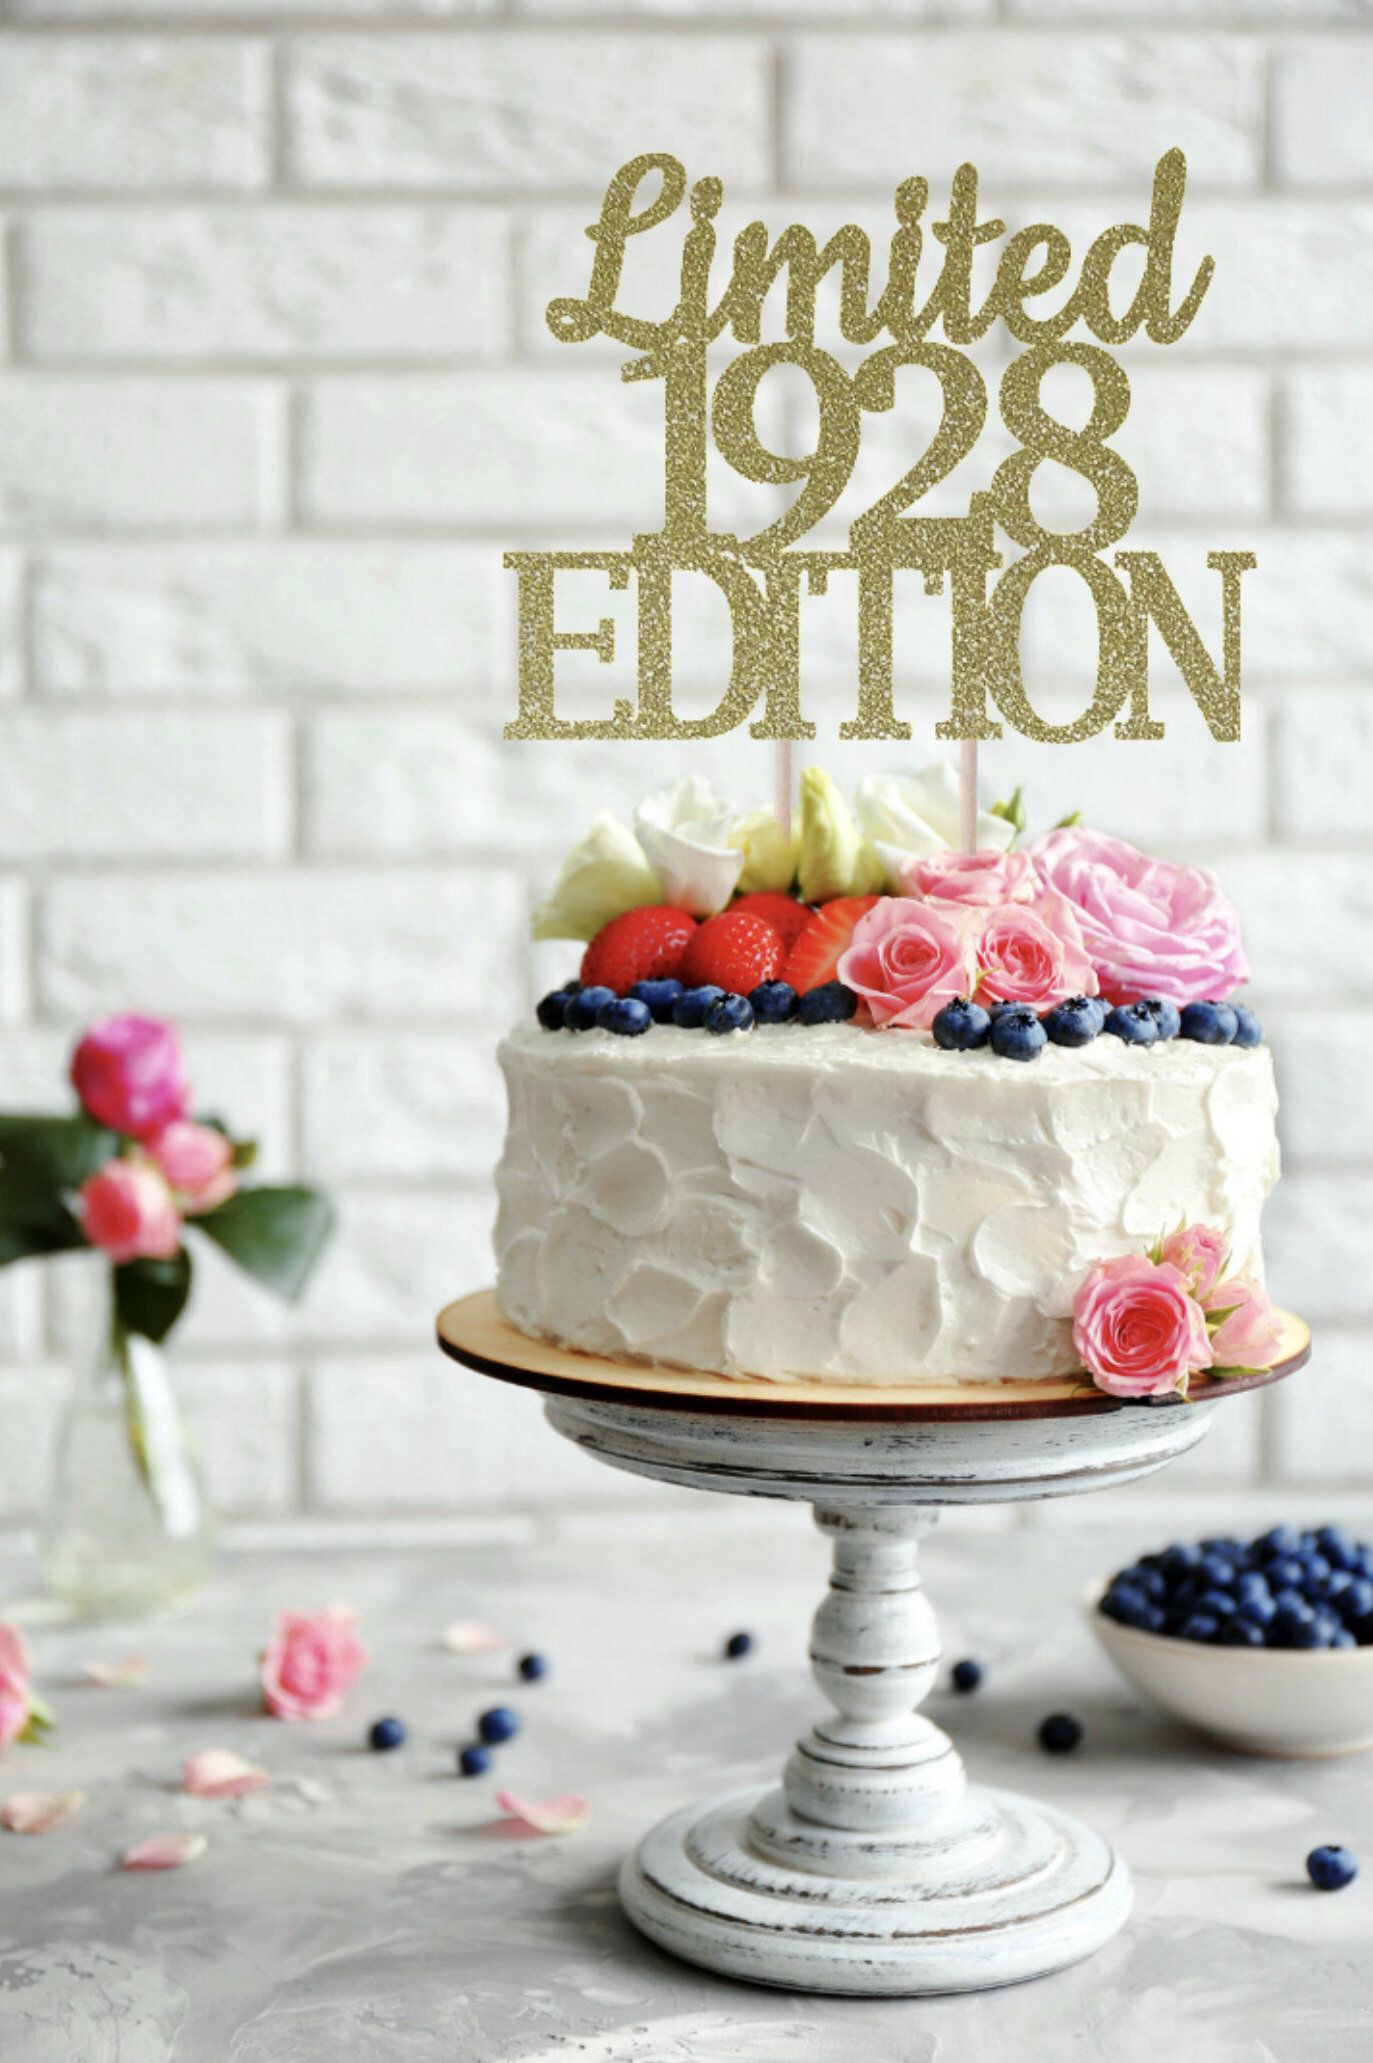 Limited 1928 Edition Cake Topper 90 Years Loved 90th Birthday